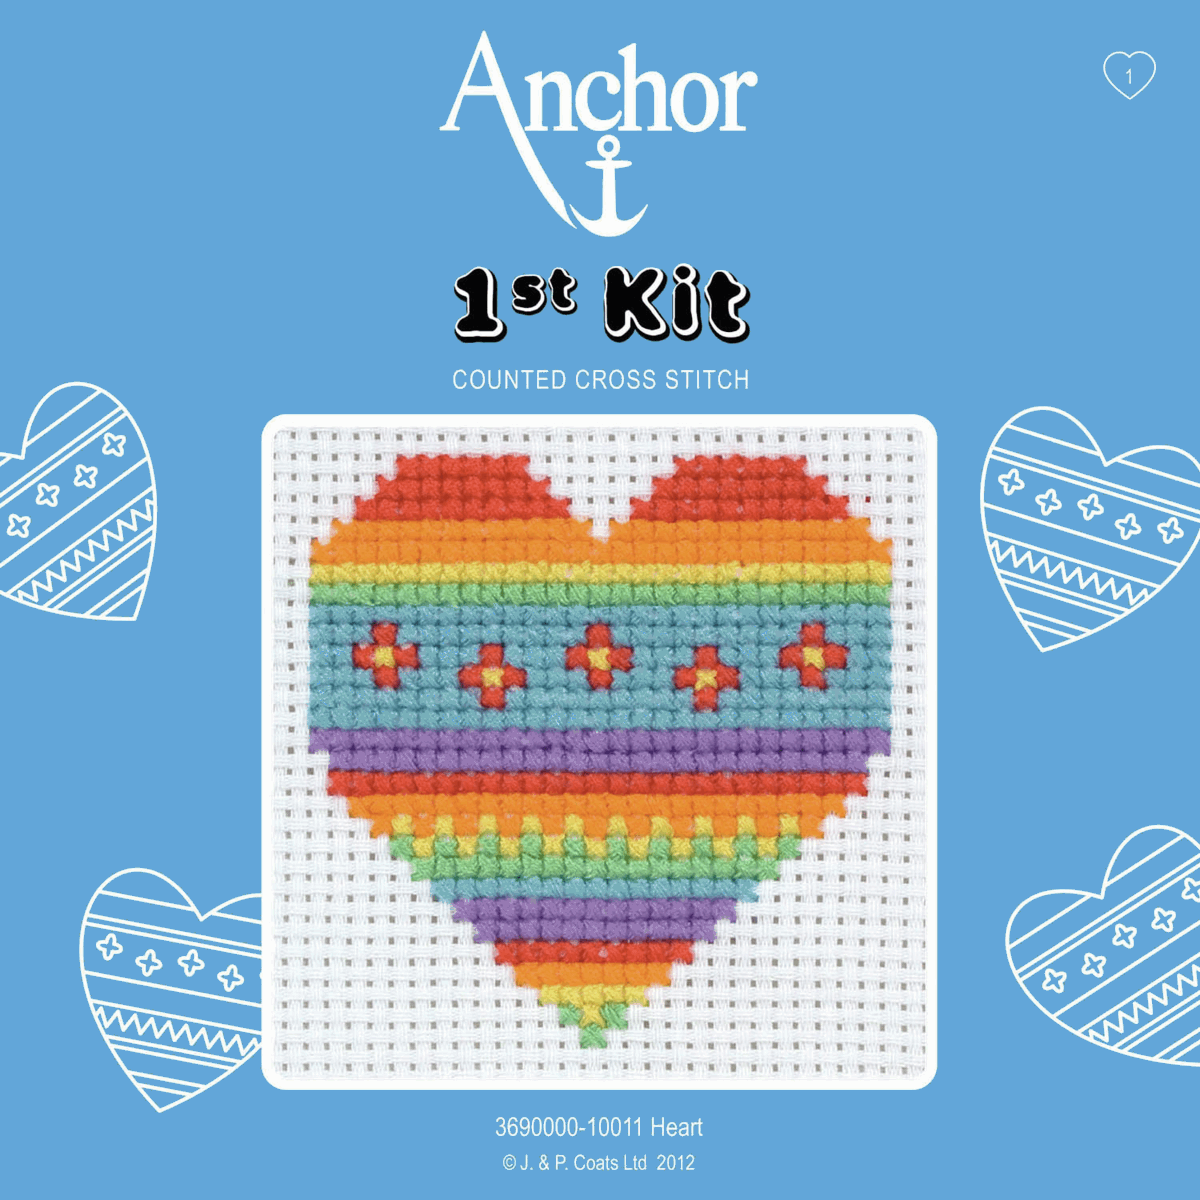 1st Cross Stitch Kit by Anchor - Heart